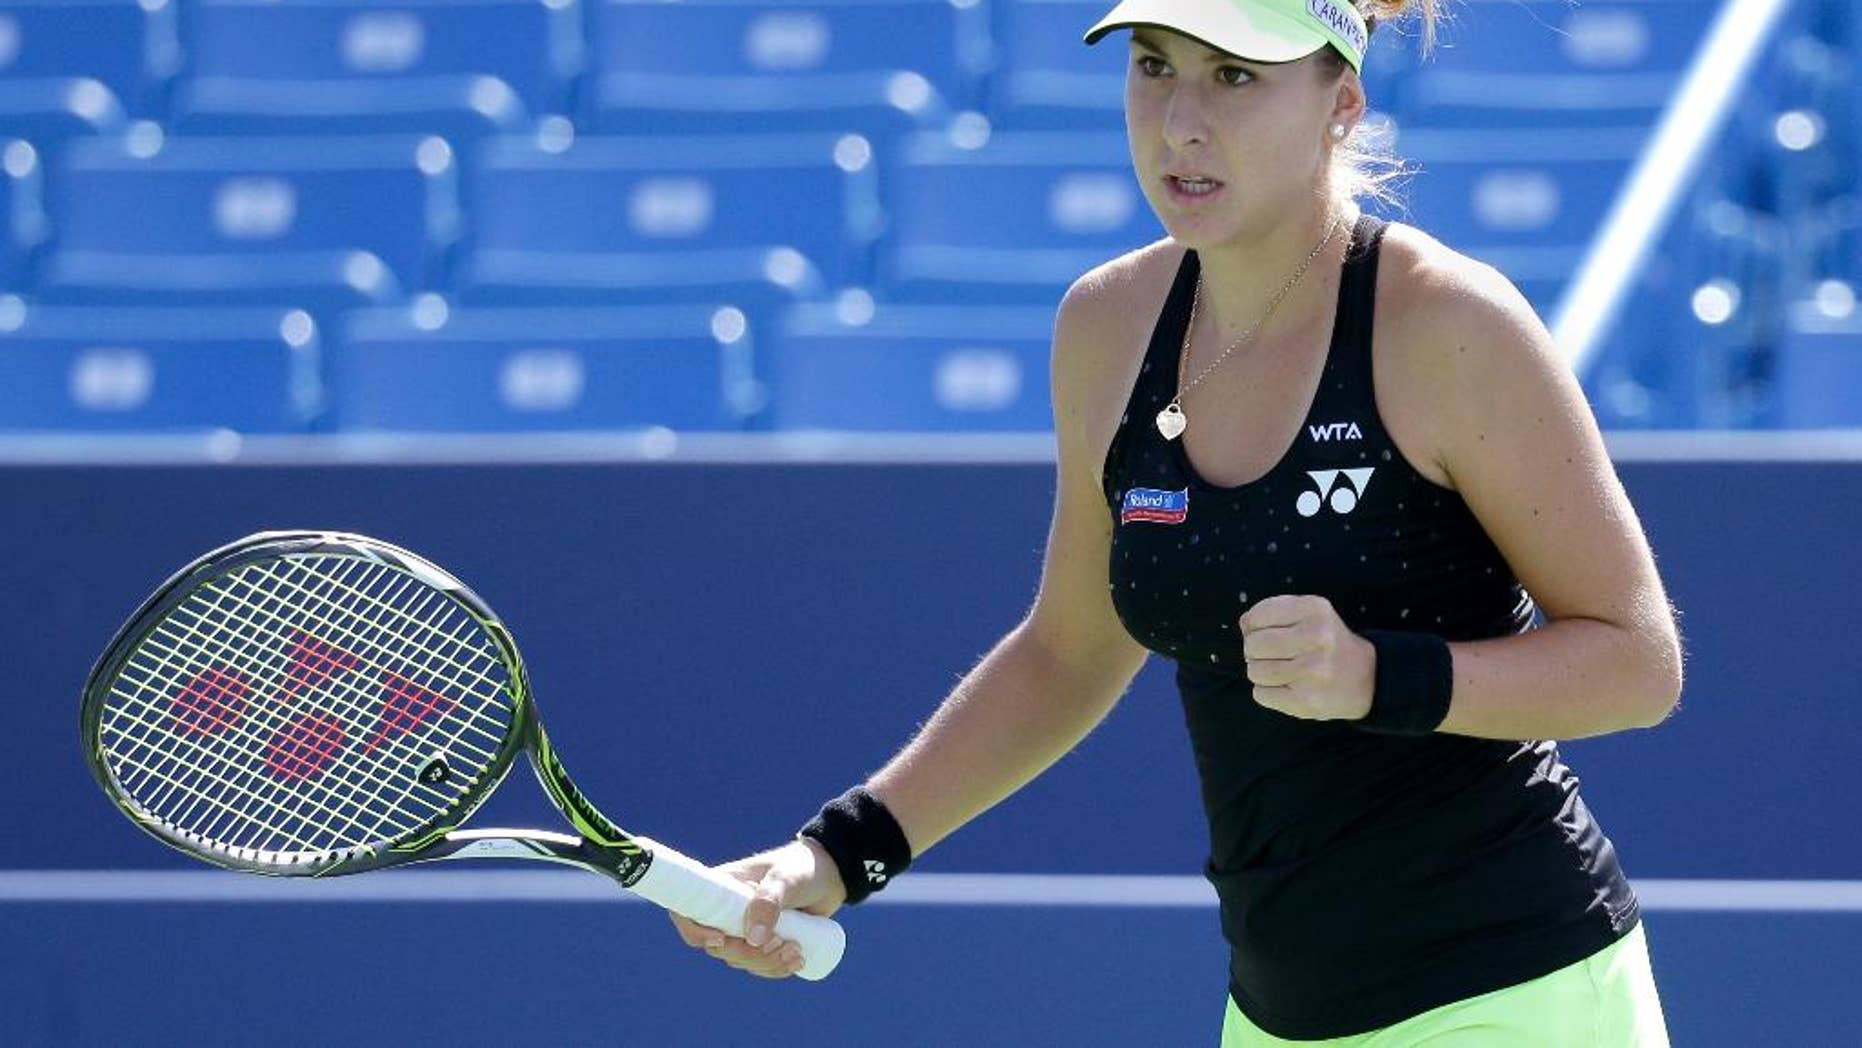 Belinda Bencic, of Switzerland, reacts during a match against Lucie Safarova, of the Czech Republic, at the Western & Southern Open tennis tournament, Thursday, Aug. 20, 2015, in Mason, Ohio. (AP Photo/John Minchillo)""